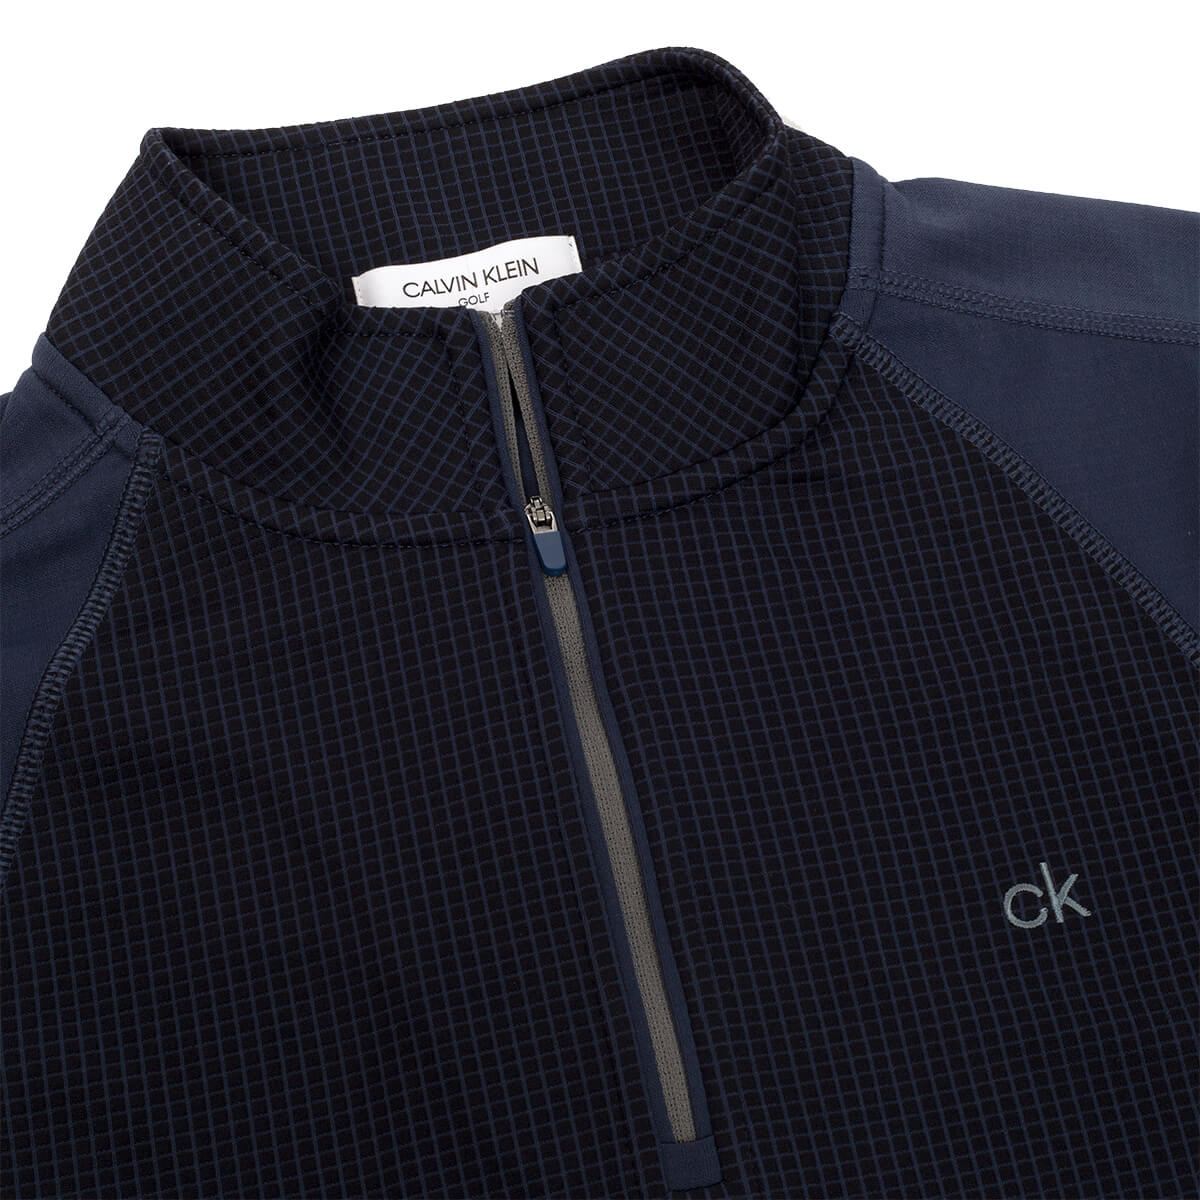 thumbnail 14 - Calvin Klein Mens 2021 Micro Grid CK 1/2 Zip Mid Layer Pullover 50% OFF RRP